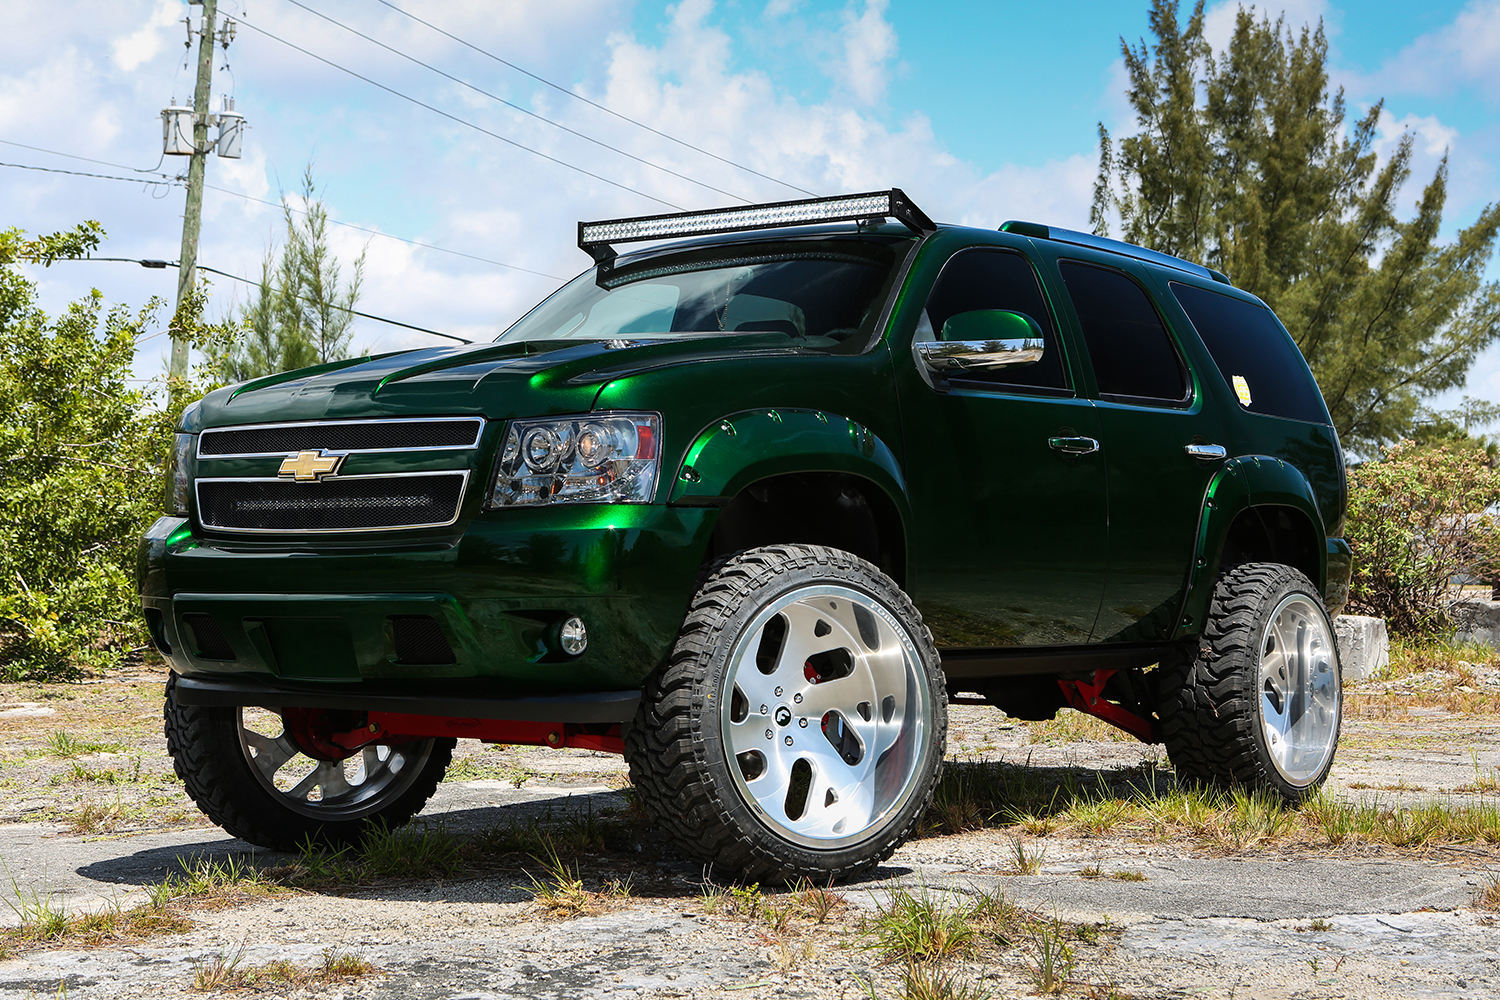 Chevy Silverado Custom Wheels >> Lifted Chevy Taho Rides on Forgiatos, Looks Fresh in Green - autoevolution